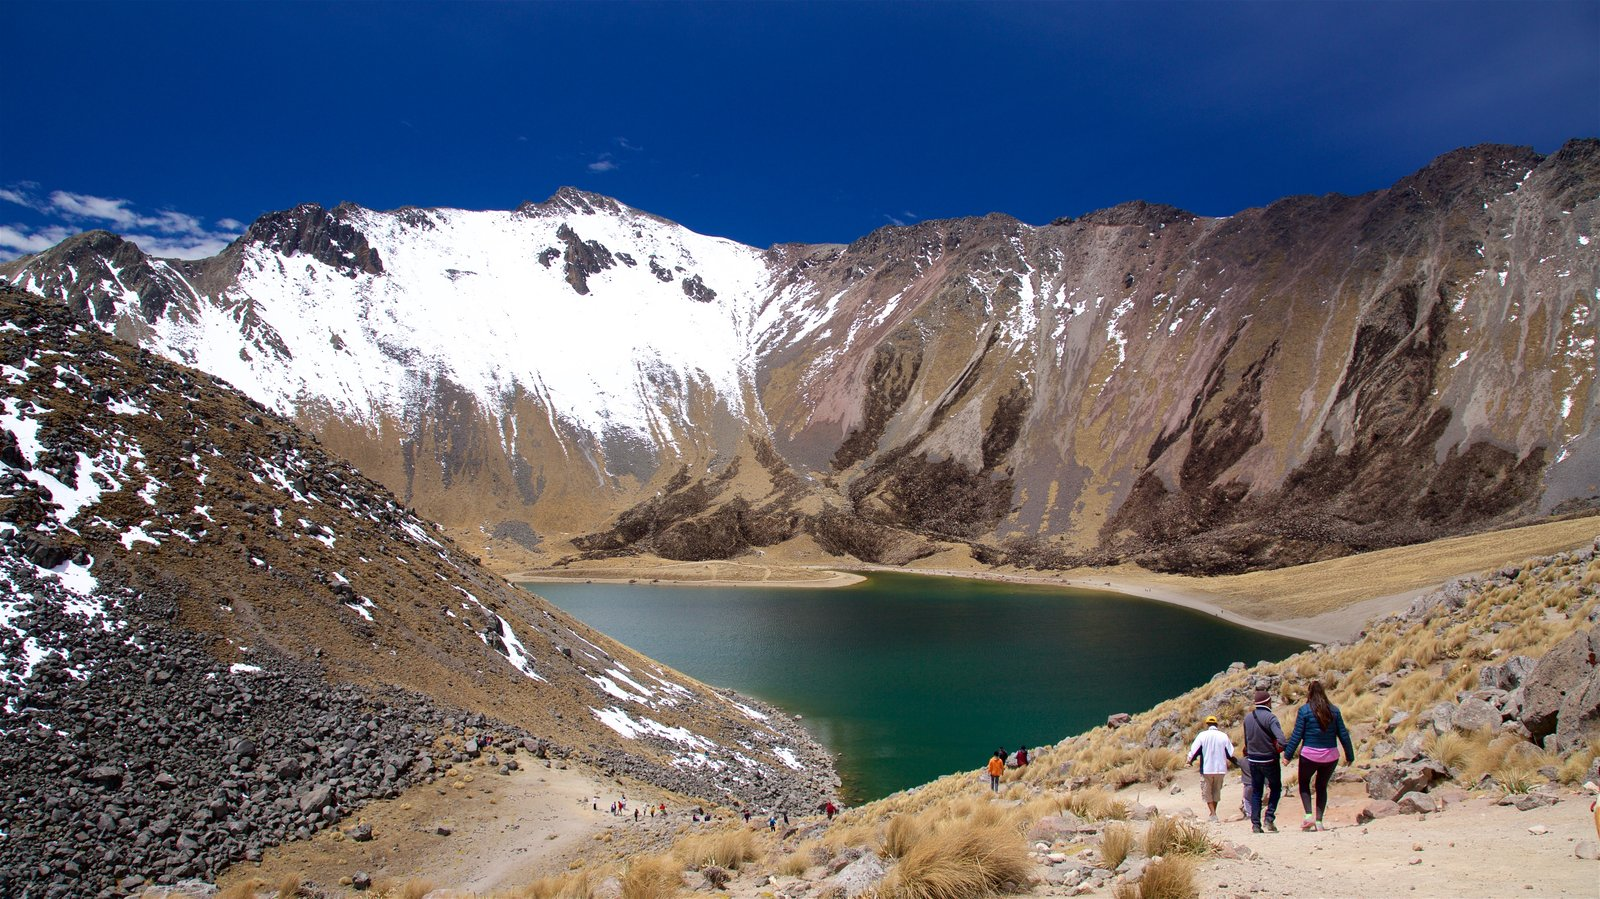 201280-Nevado-De-Toluca-National-Park